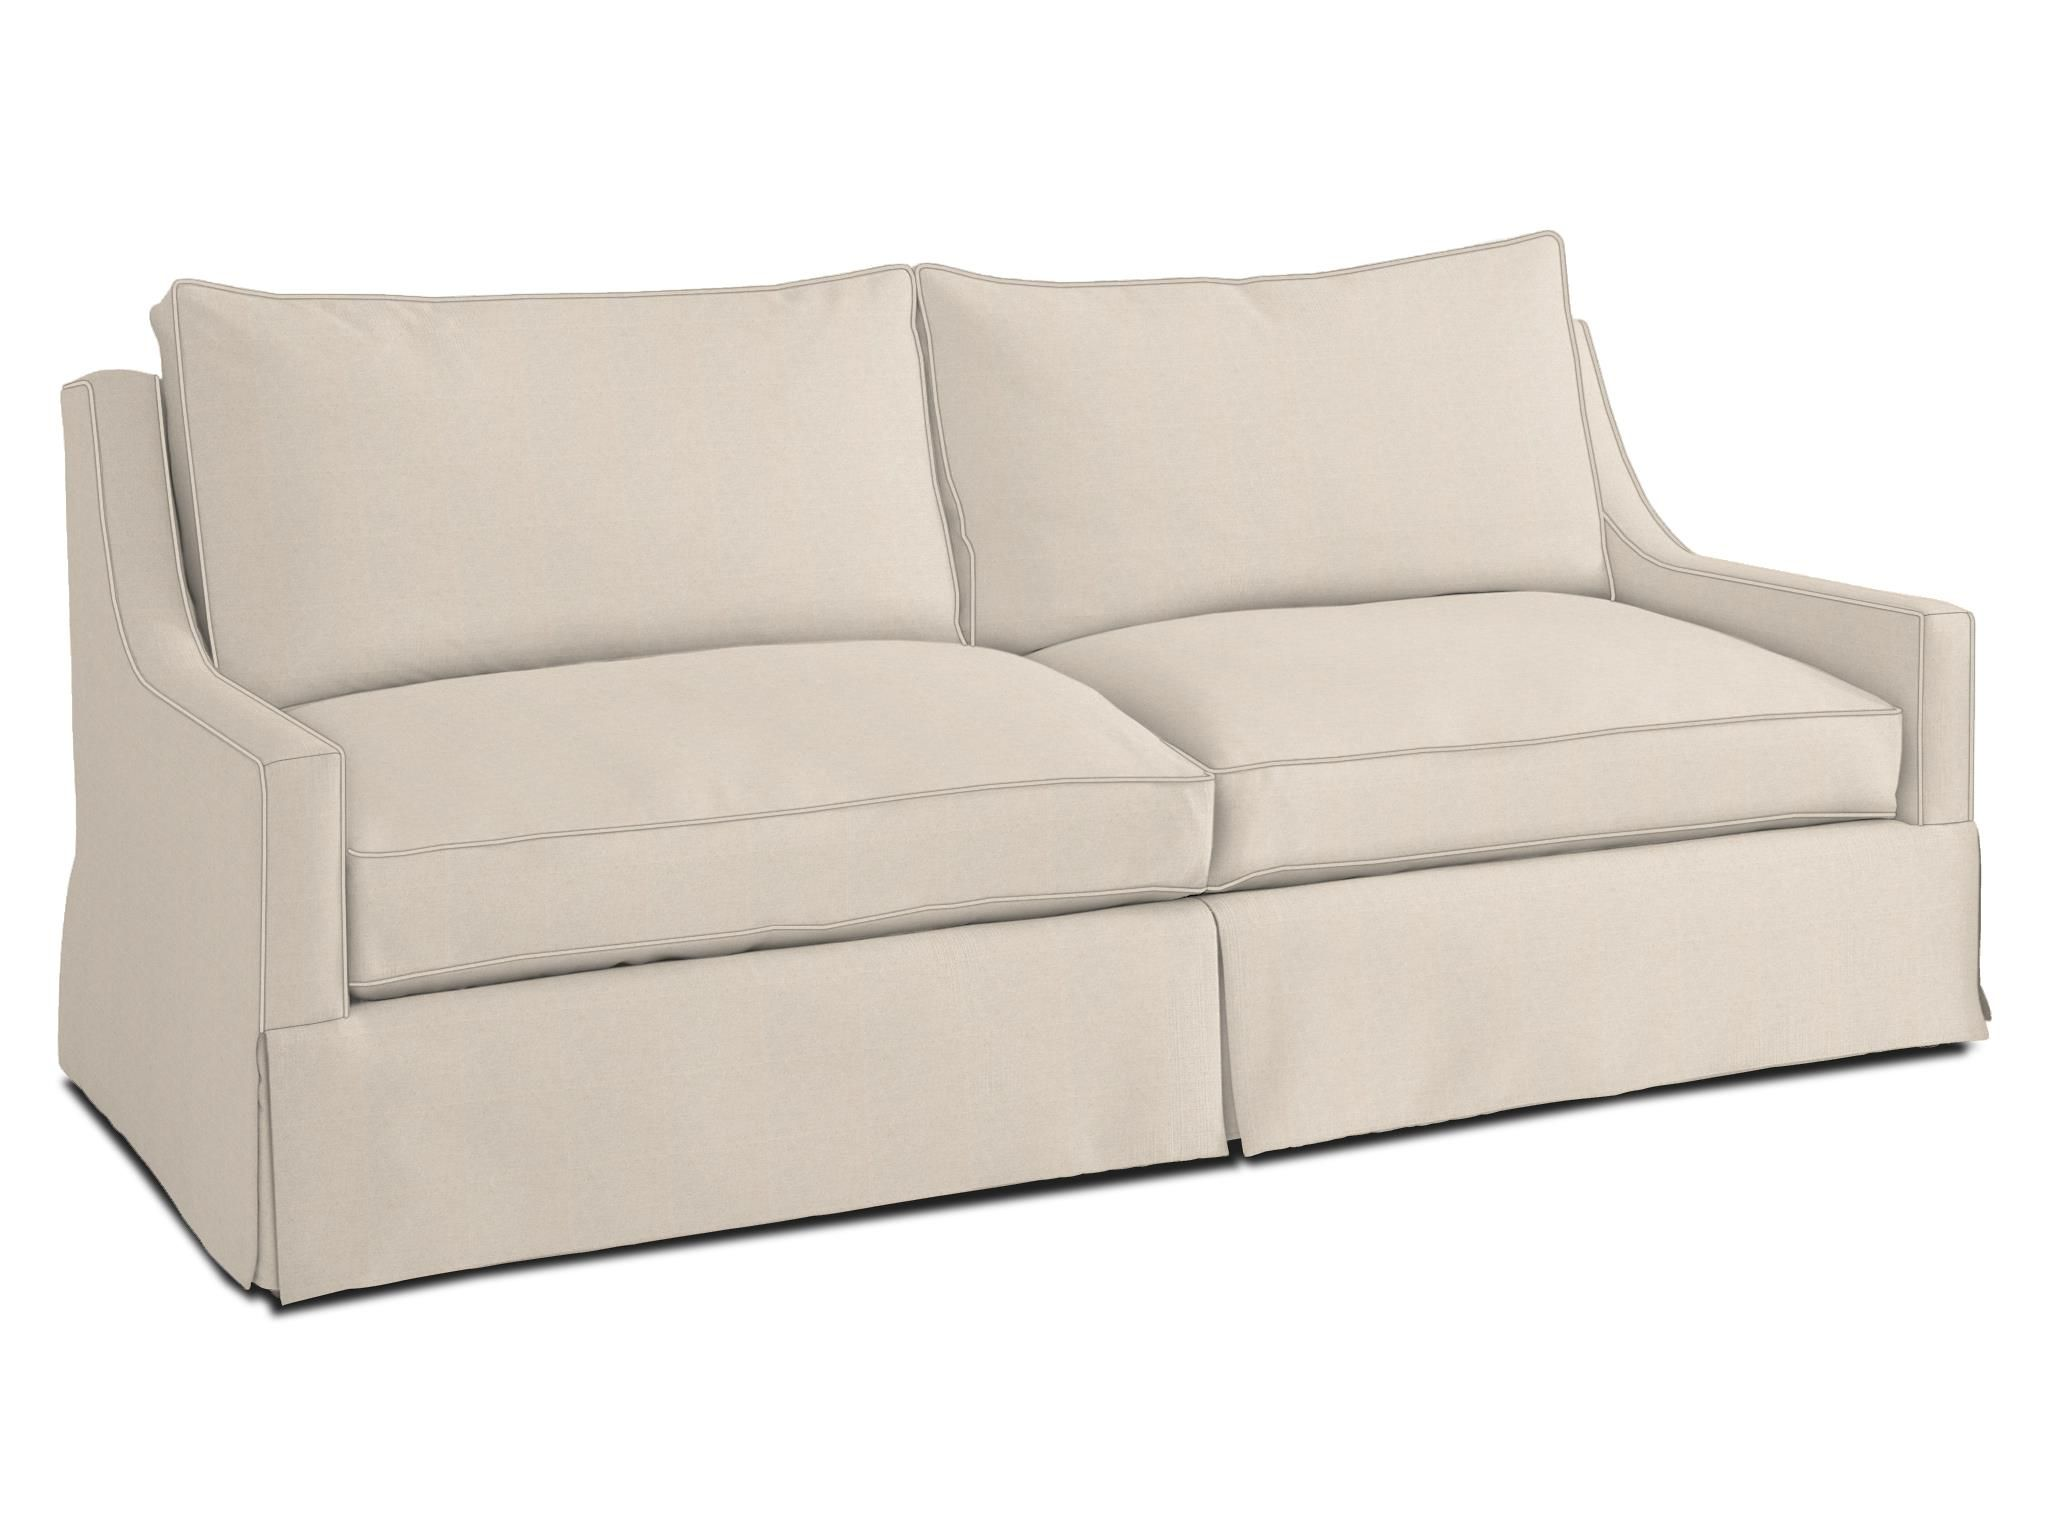 Best Chairs Inc Recliner Reviews Lazy Boy Lounge Bassett Sofa Slipcovers Review Home Co